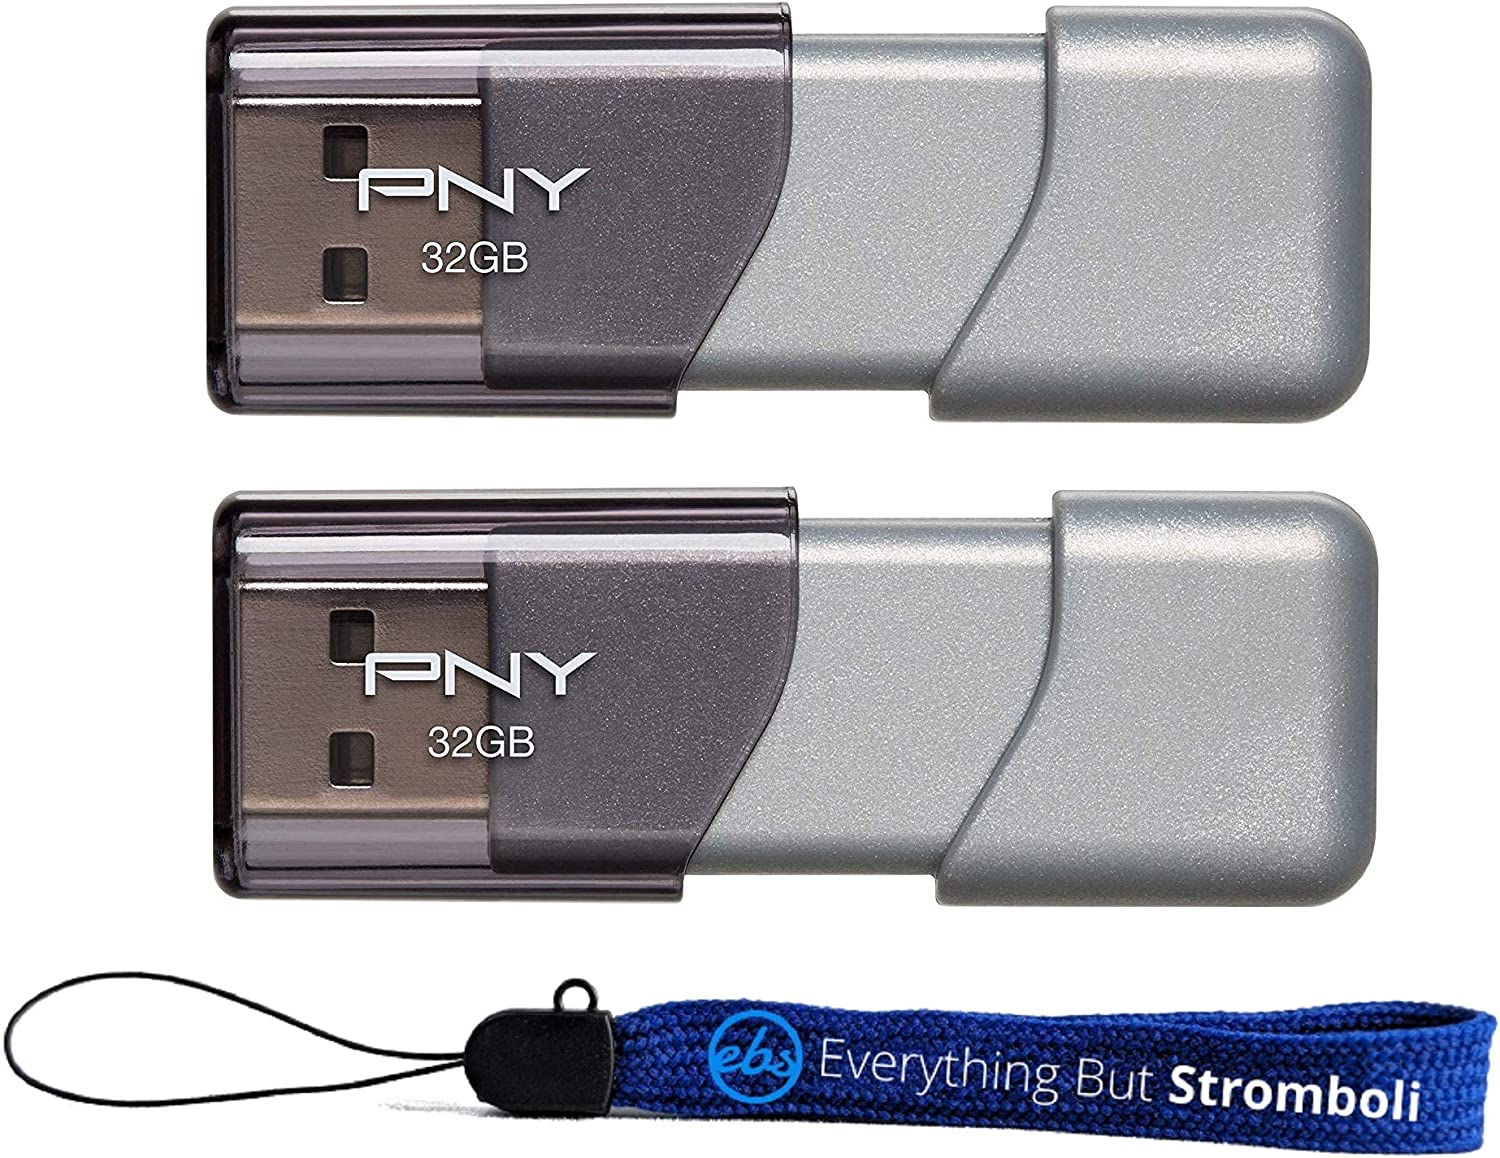 PNY USB 3.0 Flash Drive Elite Turbo Attache 3 Two Pack Bundle with (1) Everything But Stromboli Lanyard (32GB 2 Pack, Gray)